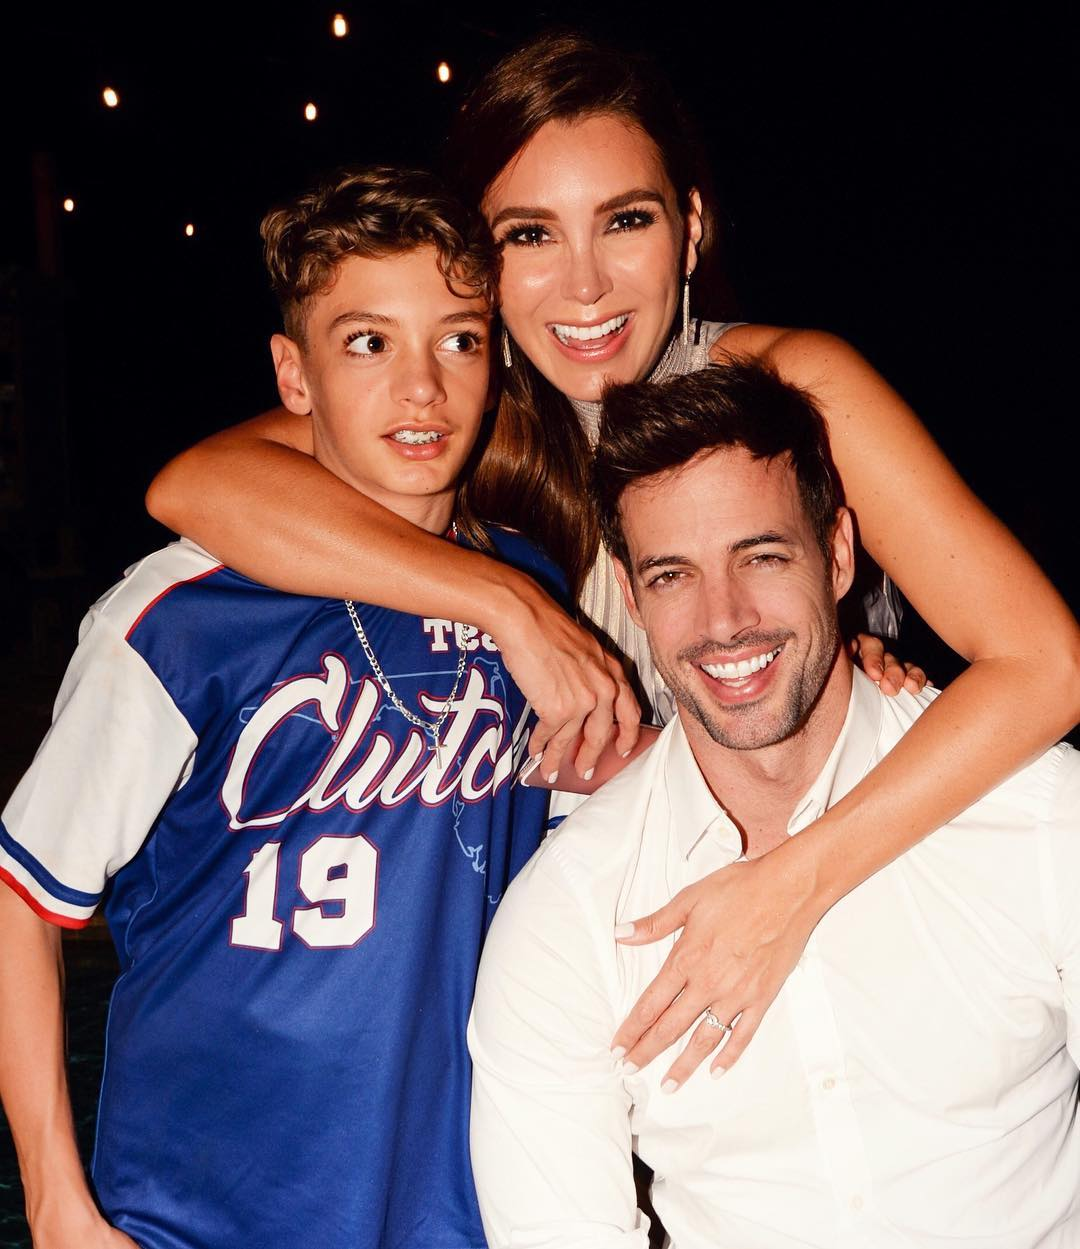 Christopher Levy con sus padres